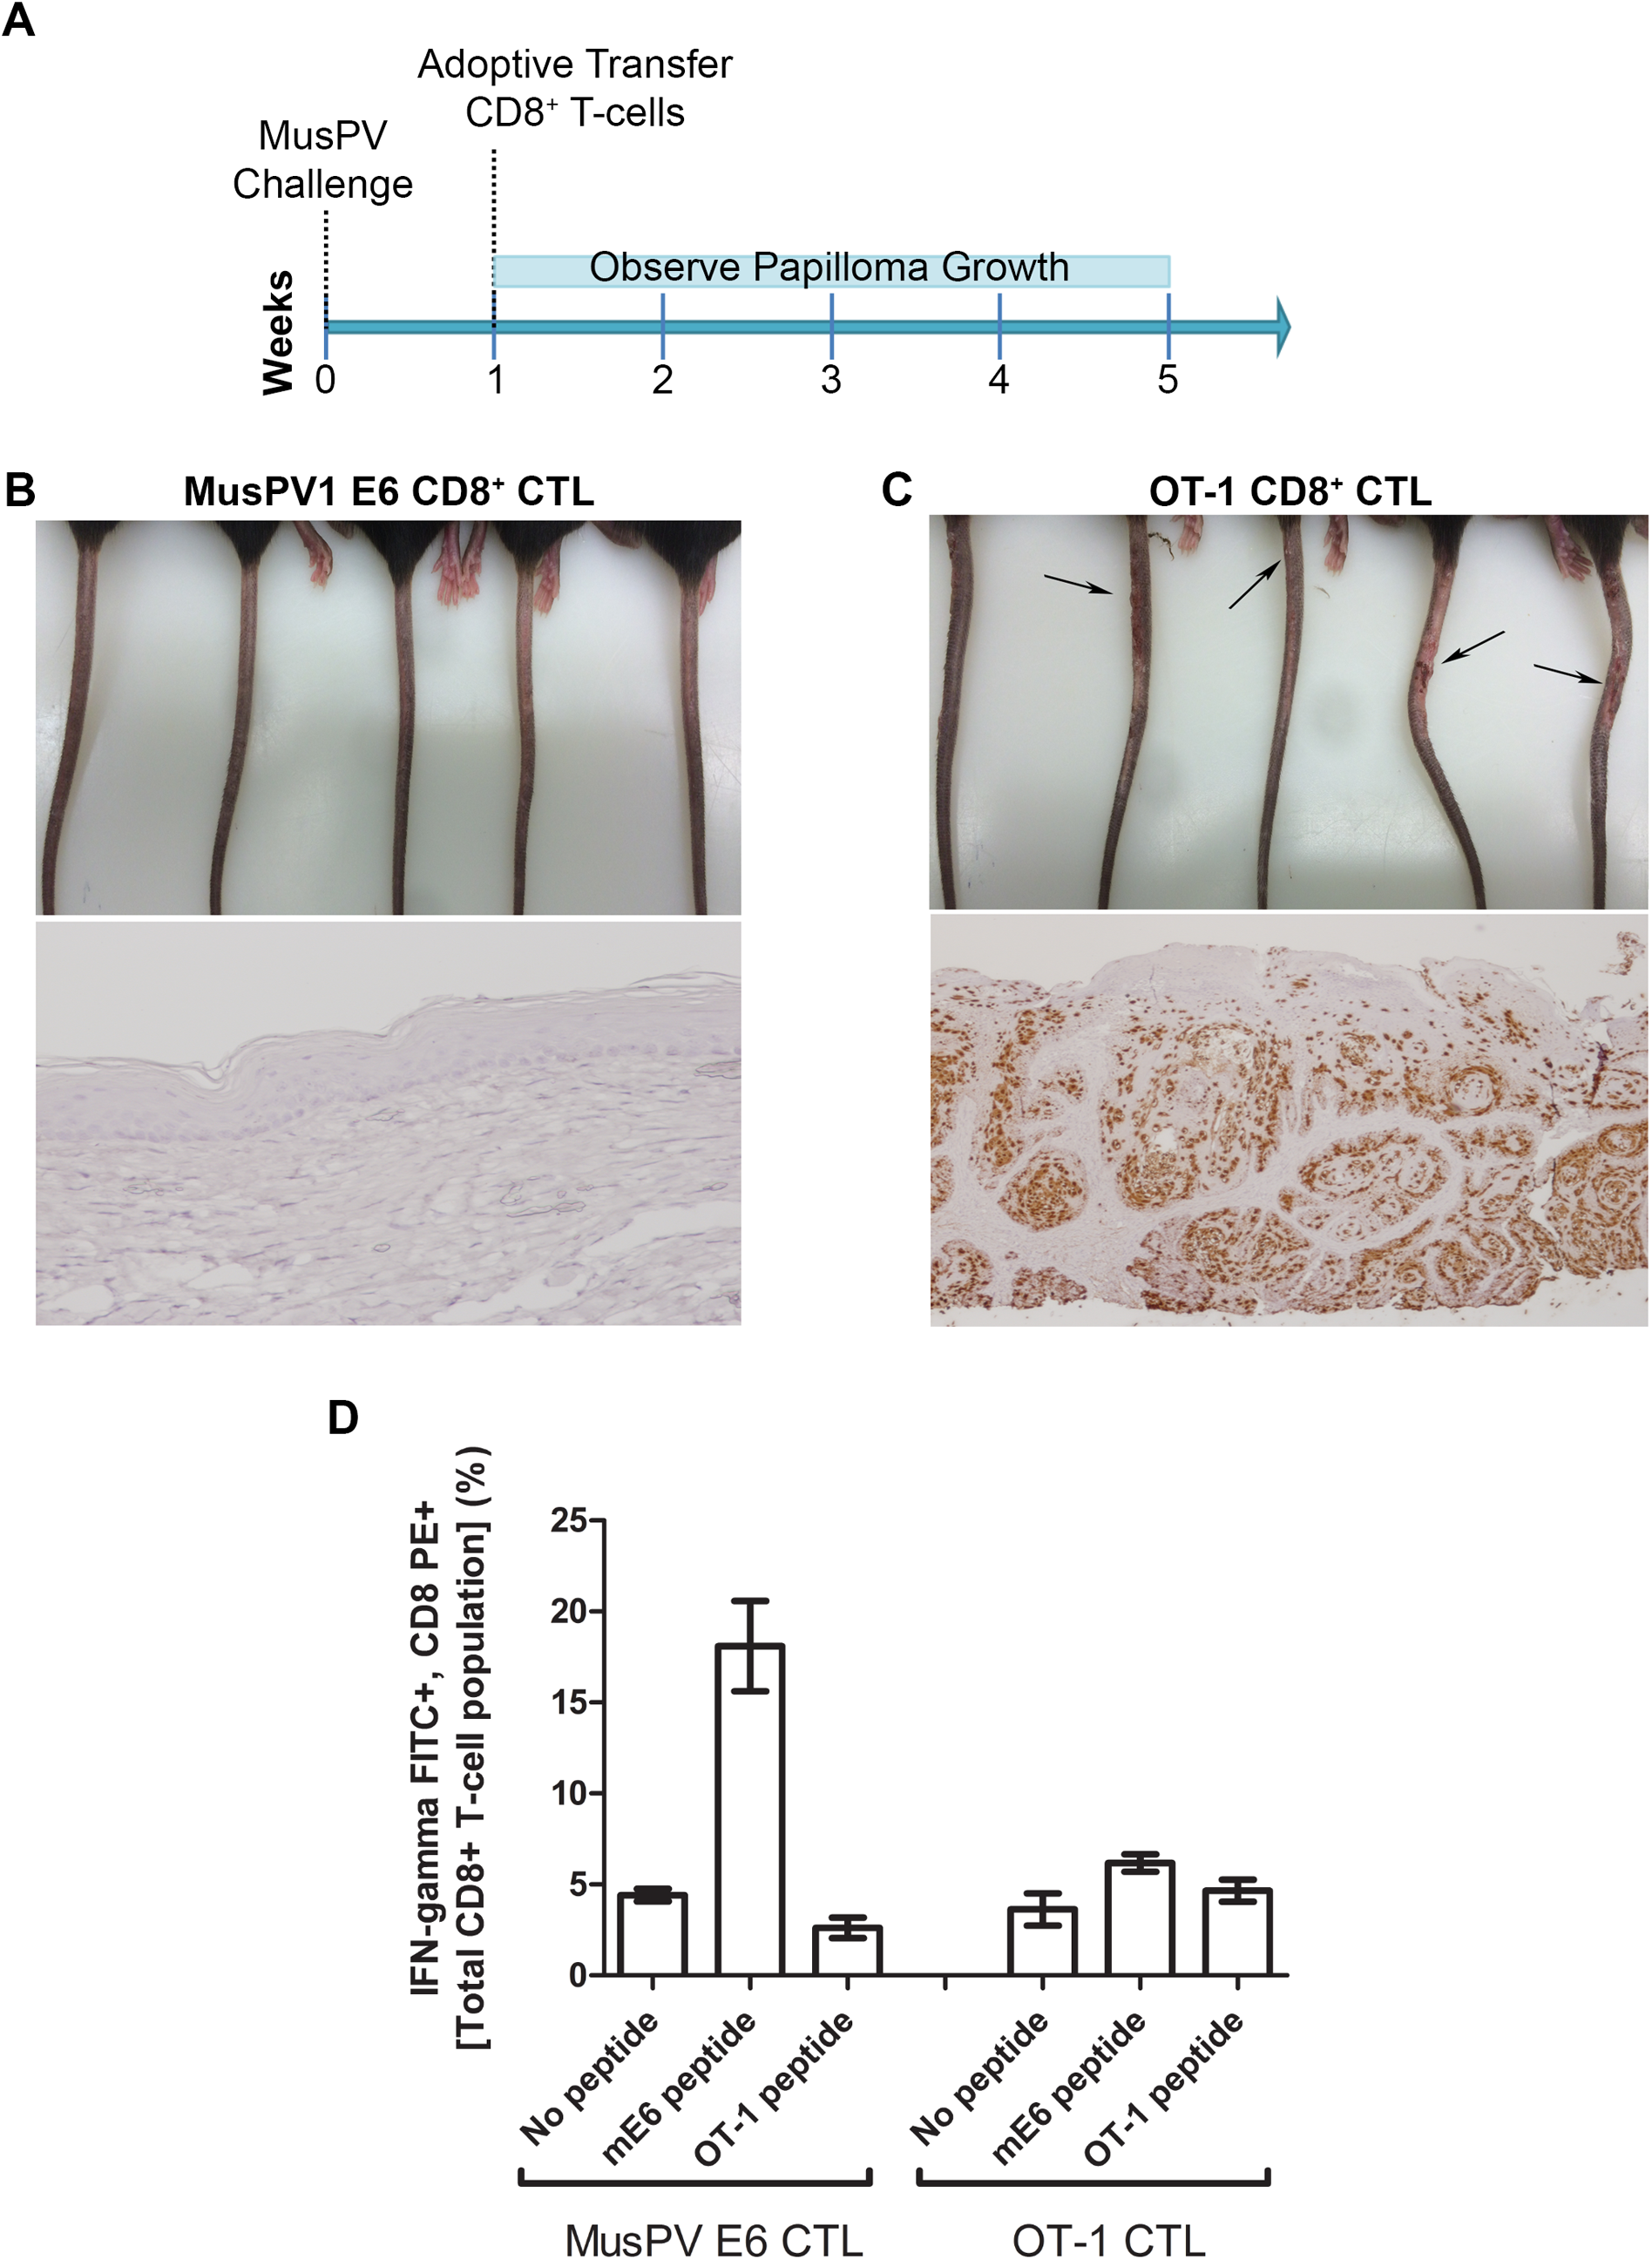 Adoptive transfer of E6-specific CD8+ cytotoxic T cell line one week after MusPV1 challenge prevents papilloma formation in immunodeficient mice.